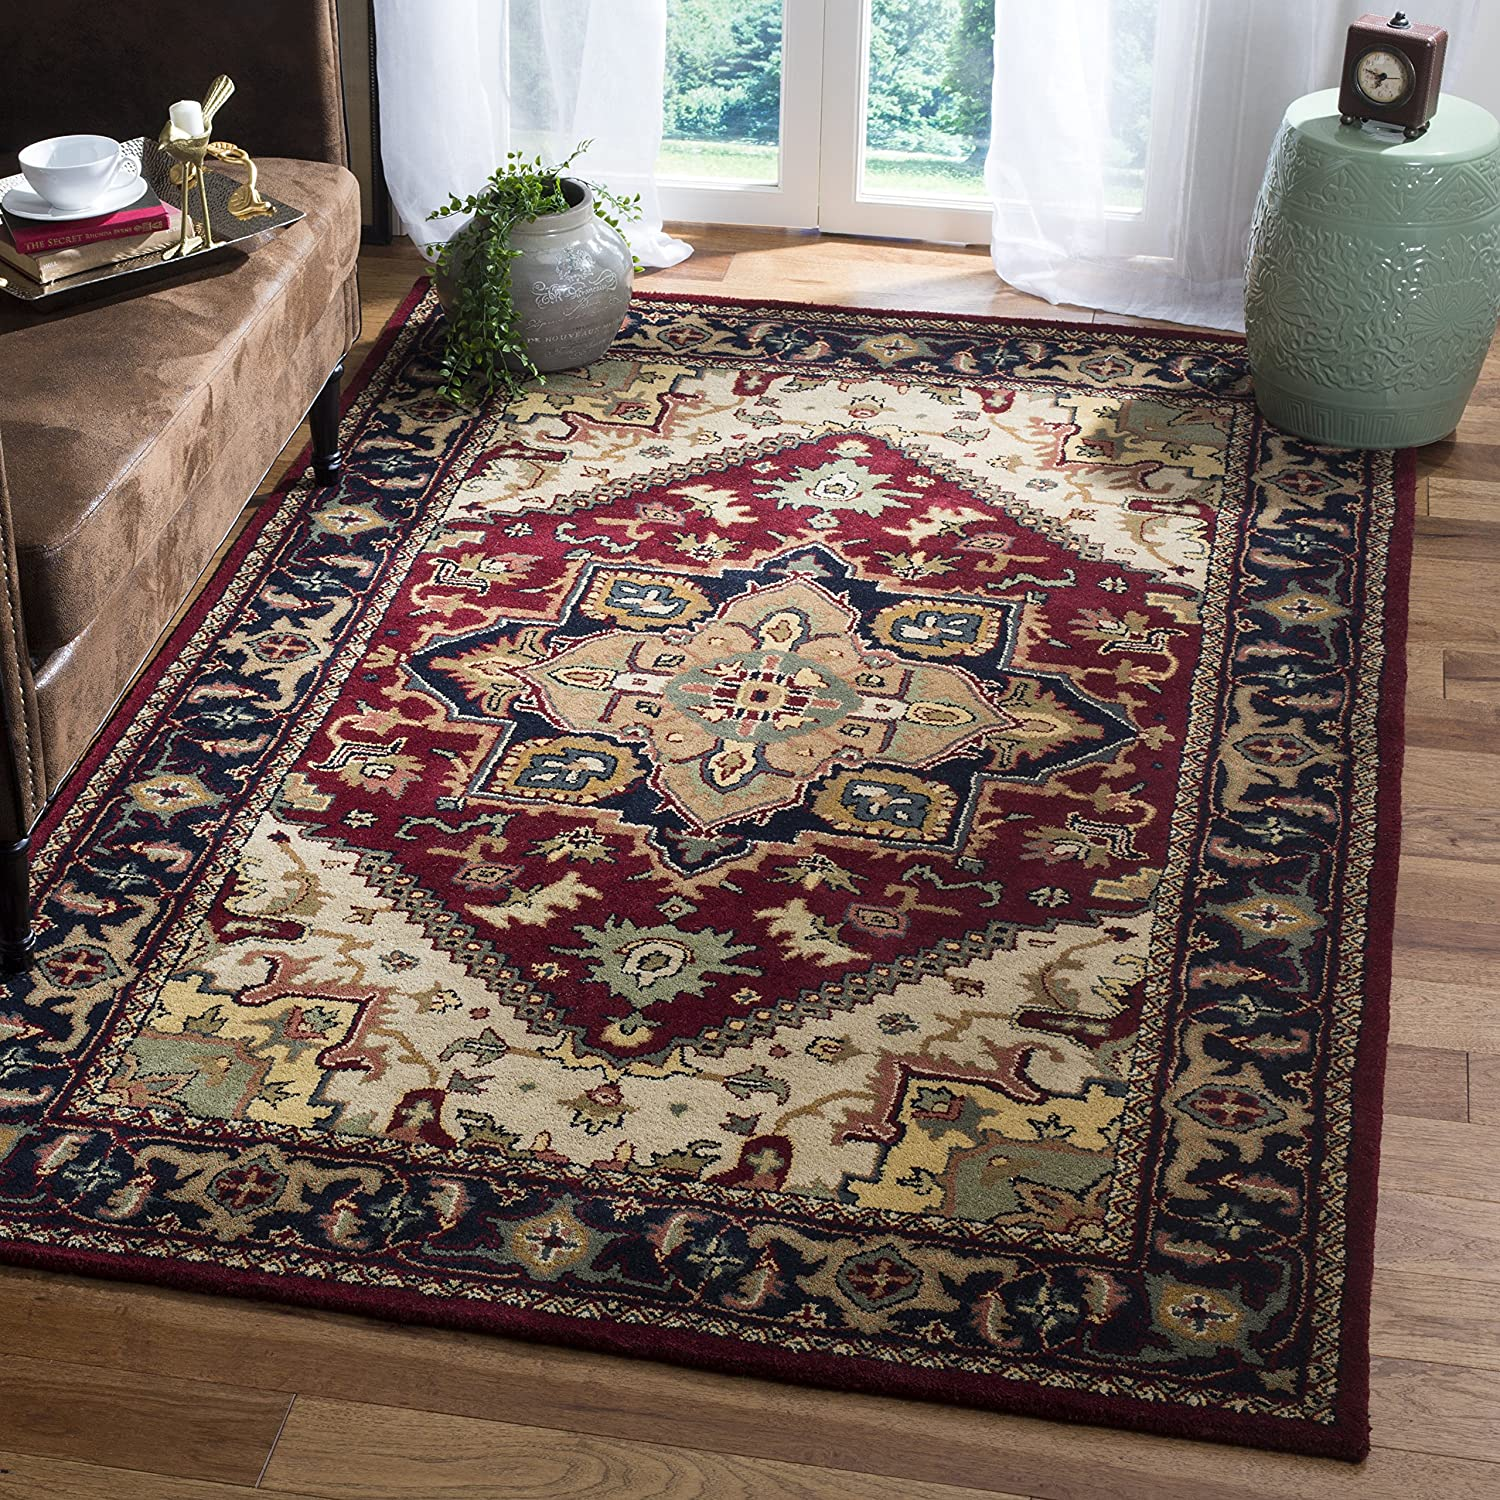 Safavieh Heritage Collection HG625A Handcrafted Traditional Oriental Heriz Medallion Red Wool Area Rug (3' x 5')